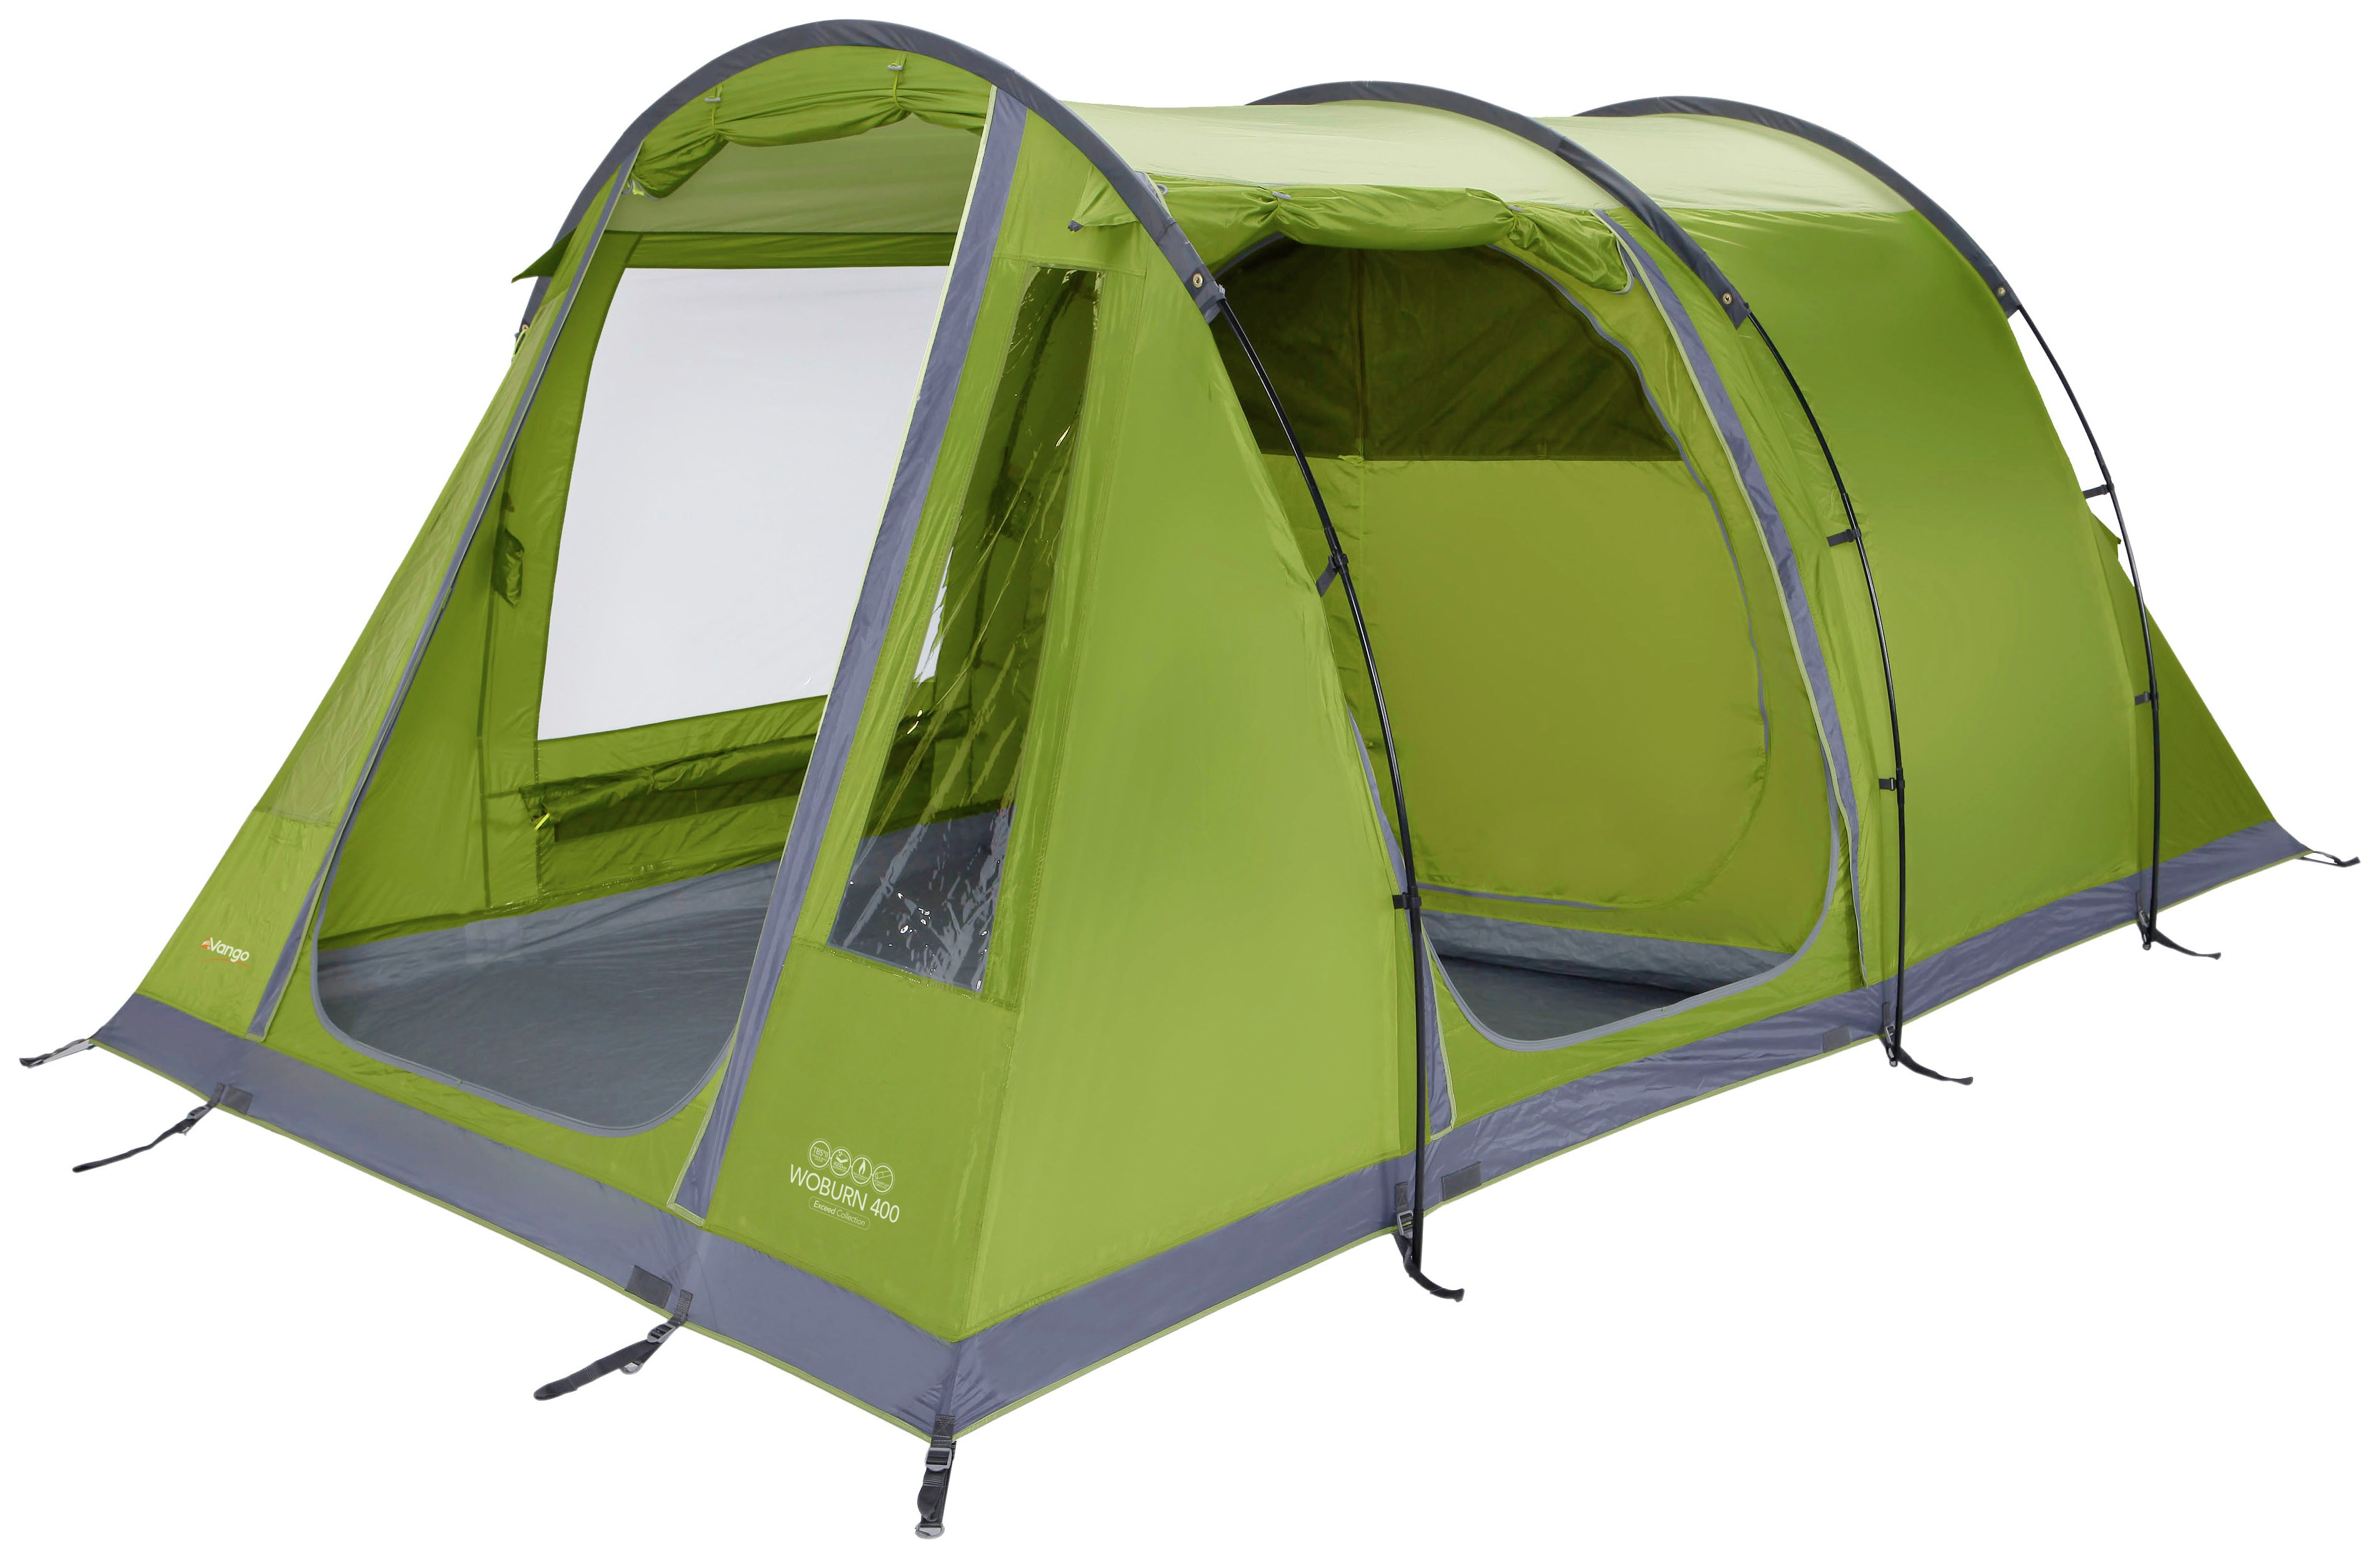 pro action 4 man 2 room tent instructions